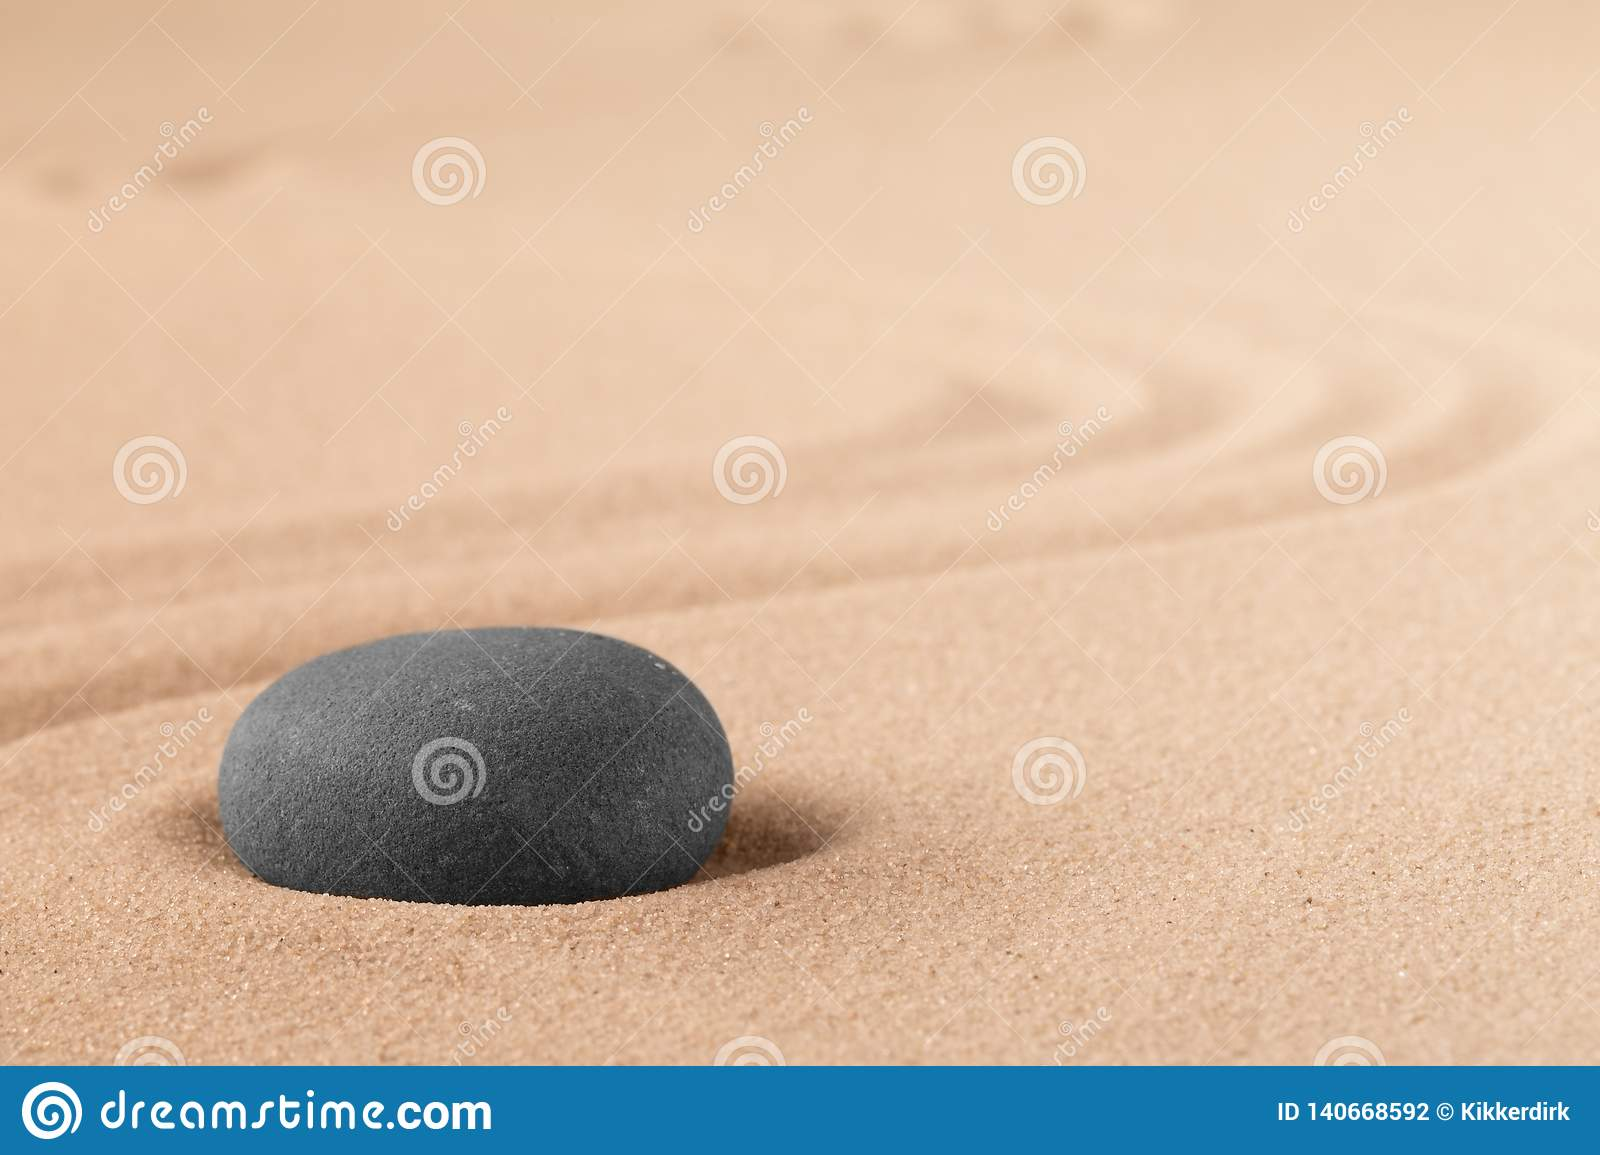 Mineral stone therapy for a quit peace of mind through zen meditation and relaxation